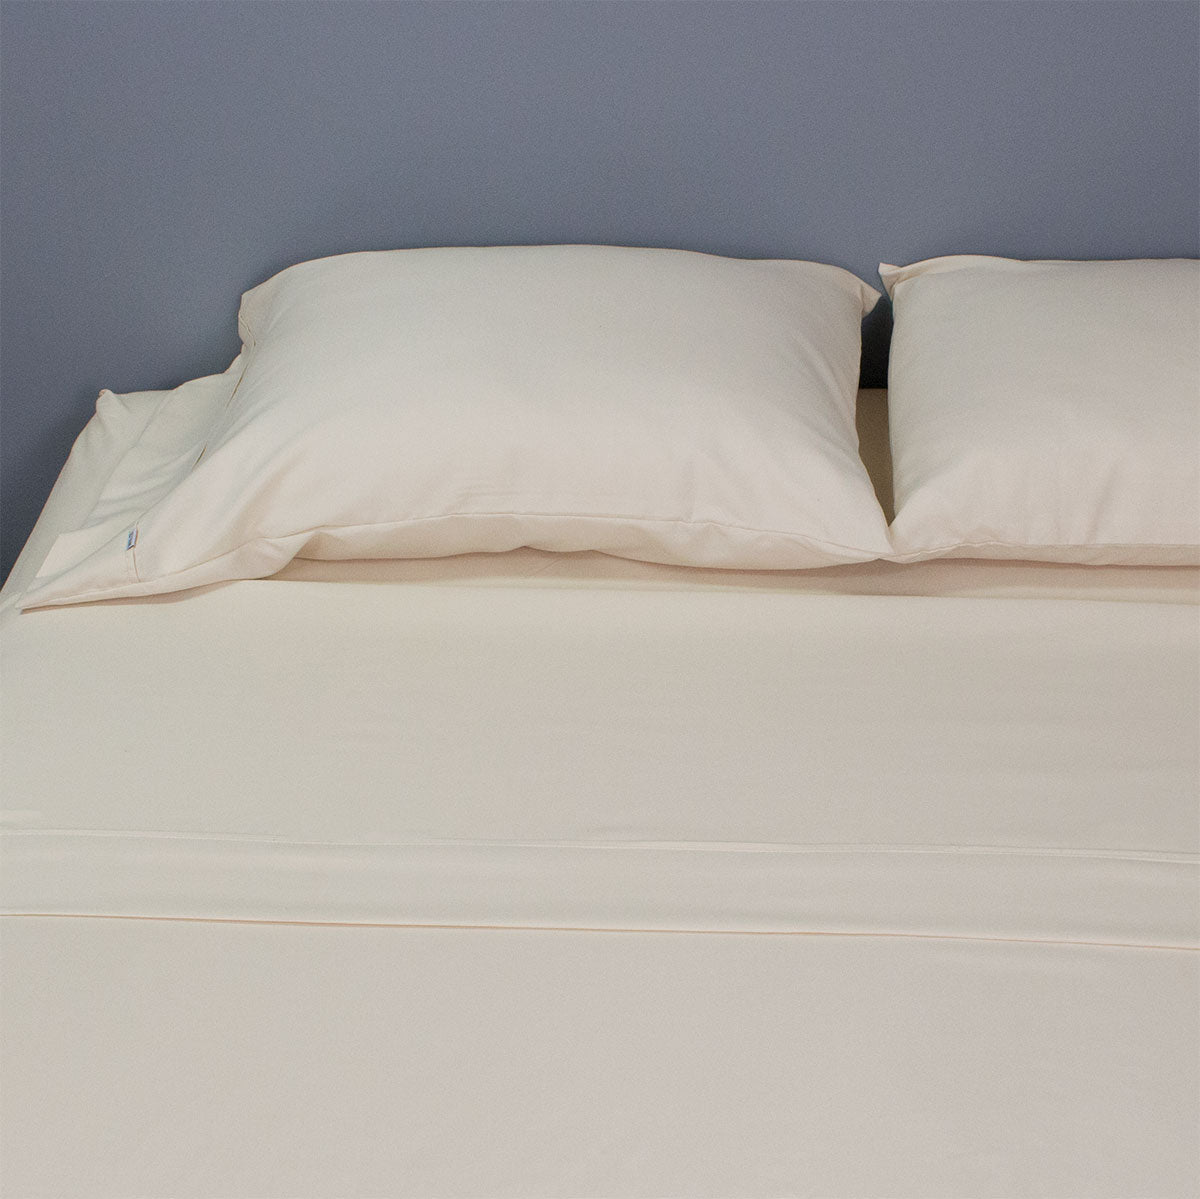 High Quality Solid Color Bed Sheet Set With Piping   Light Gray, Dark Gray  Or Beige   90 Gsm Microfiber (0350004)